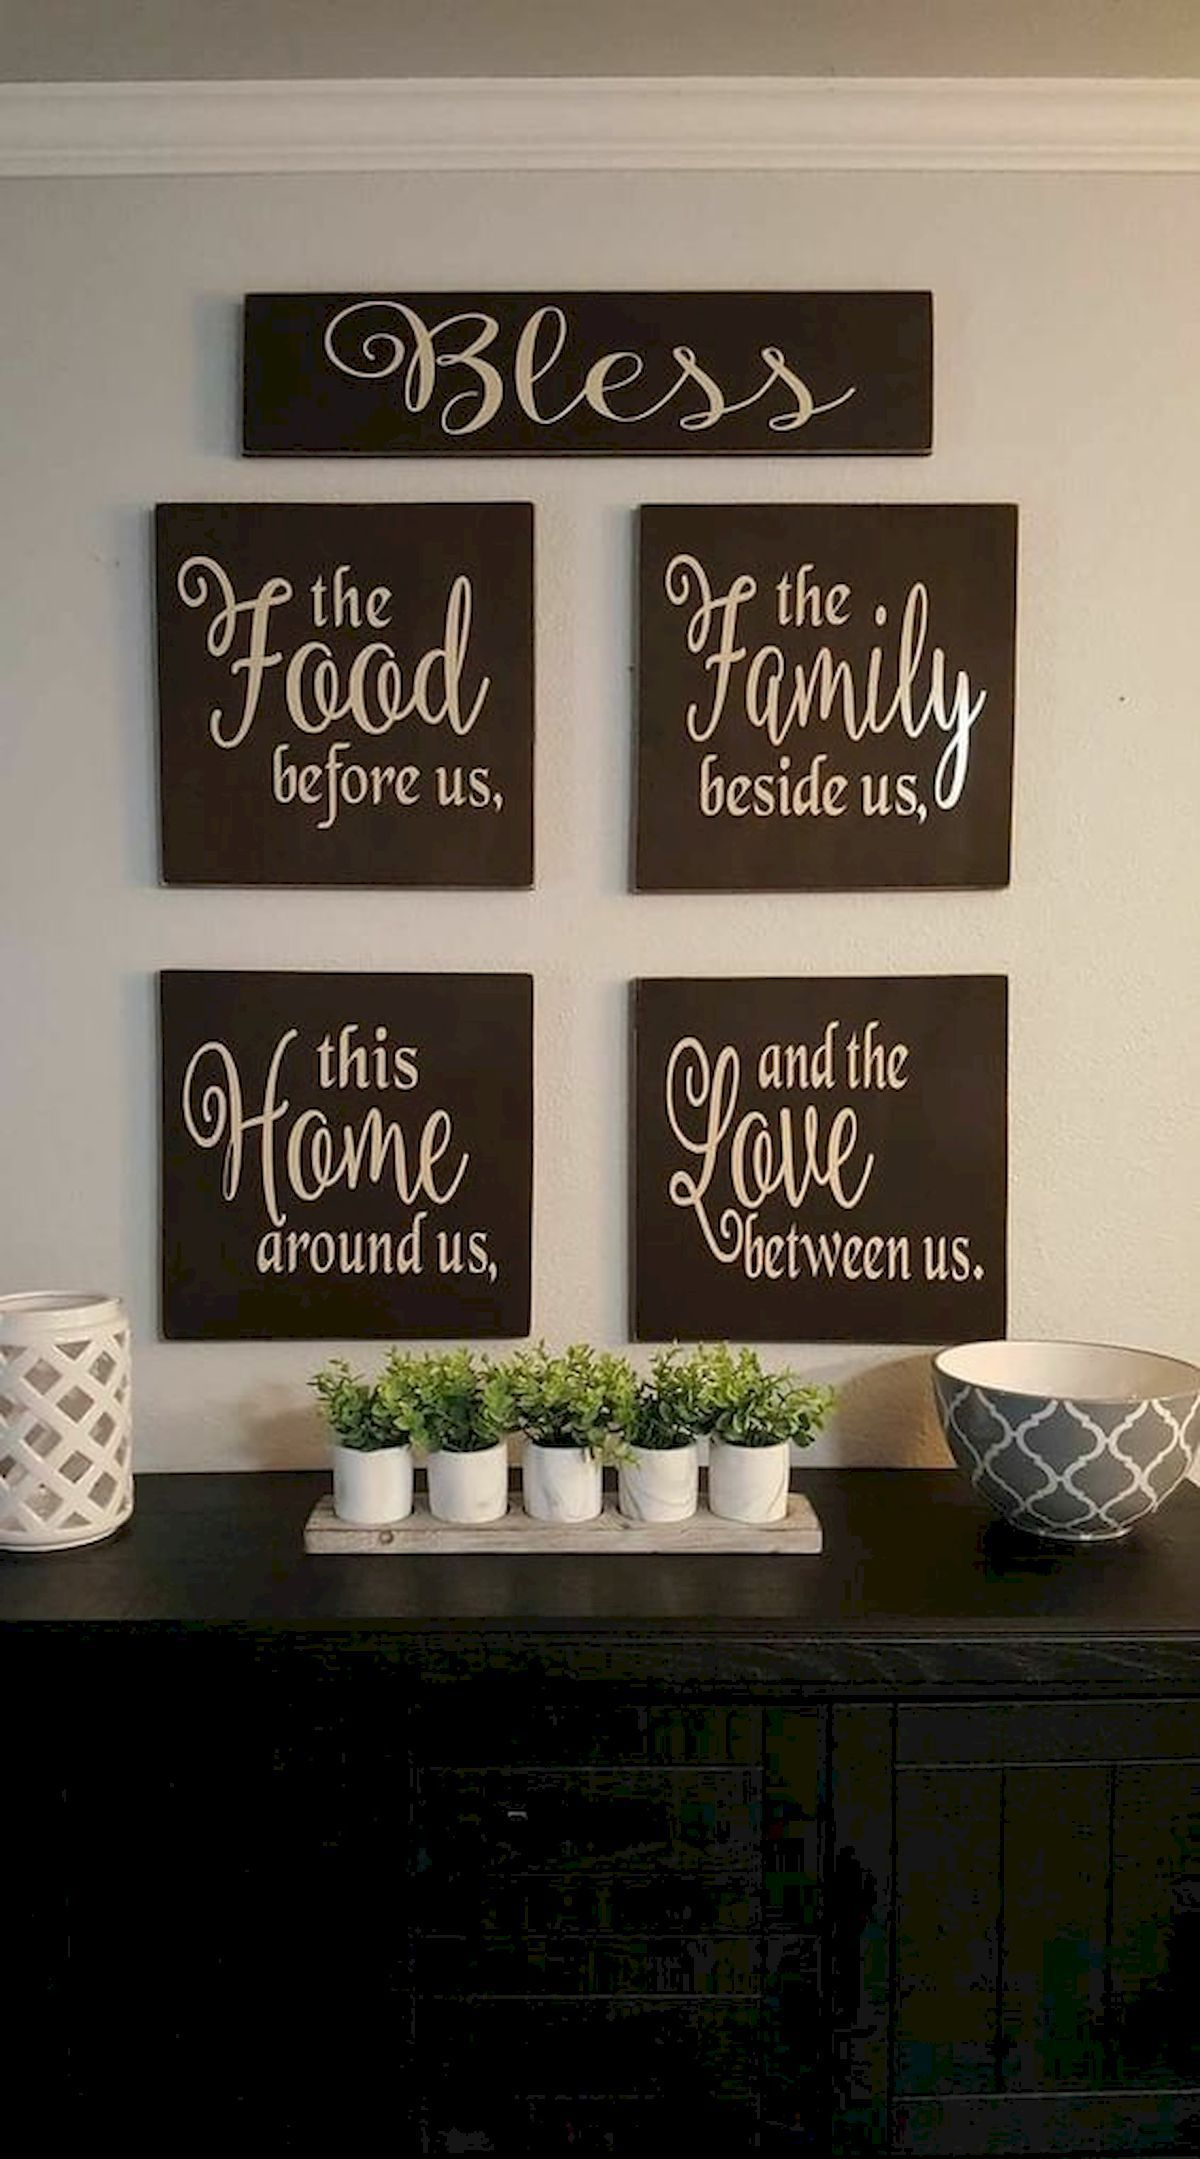 25 Casual Dining Room Wall Decor Ideas With Art And Paint Walldecorlivingroom Walldecorlivingroom Diy Pallet Wall Art Dining Room Wall Decor Diy Pallet Wall